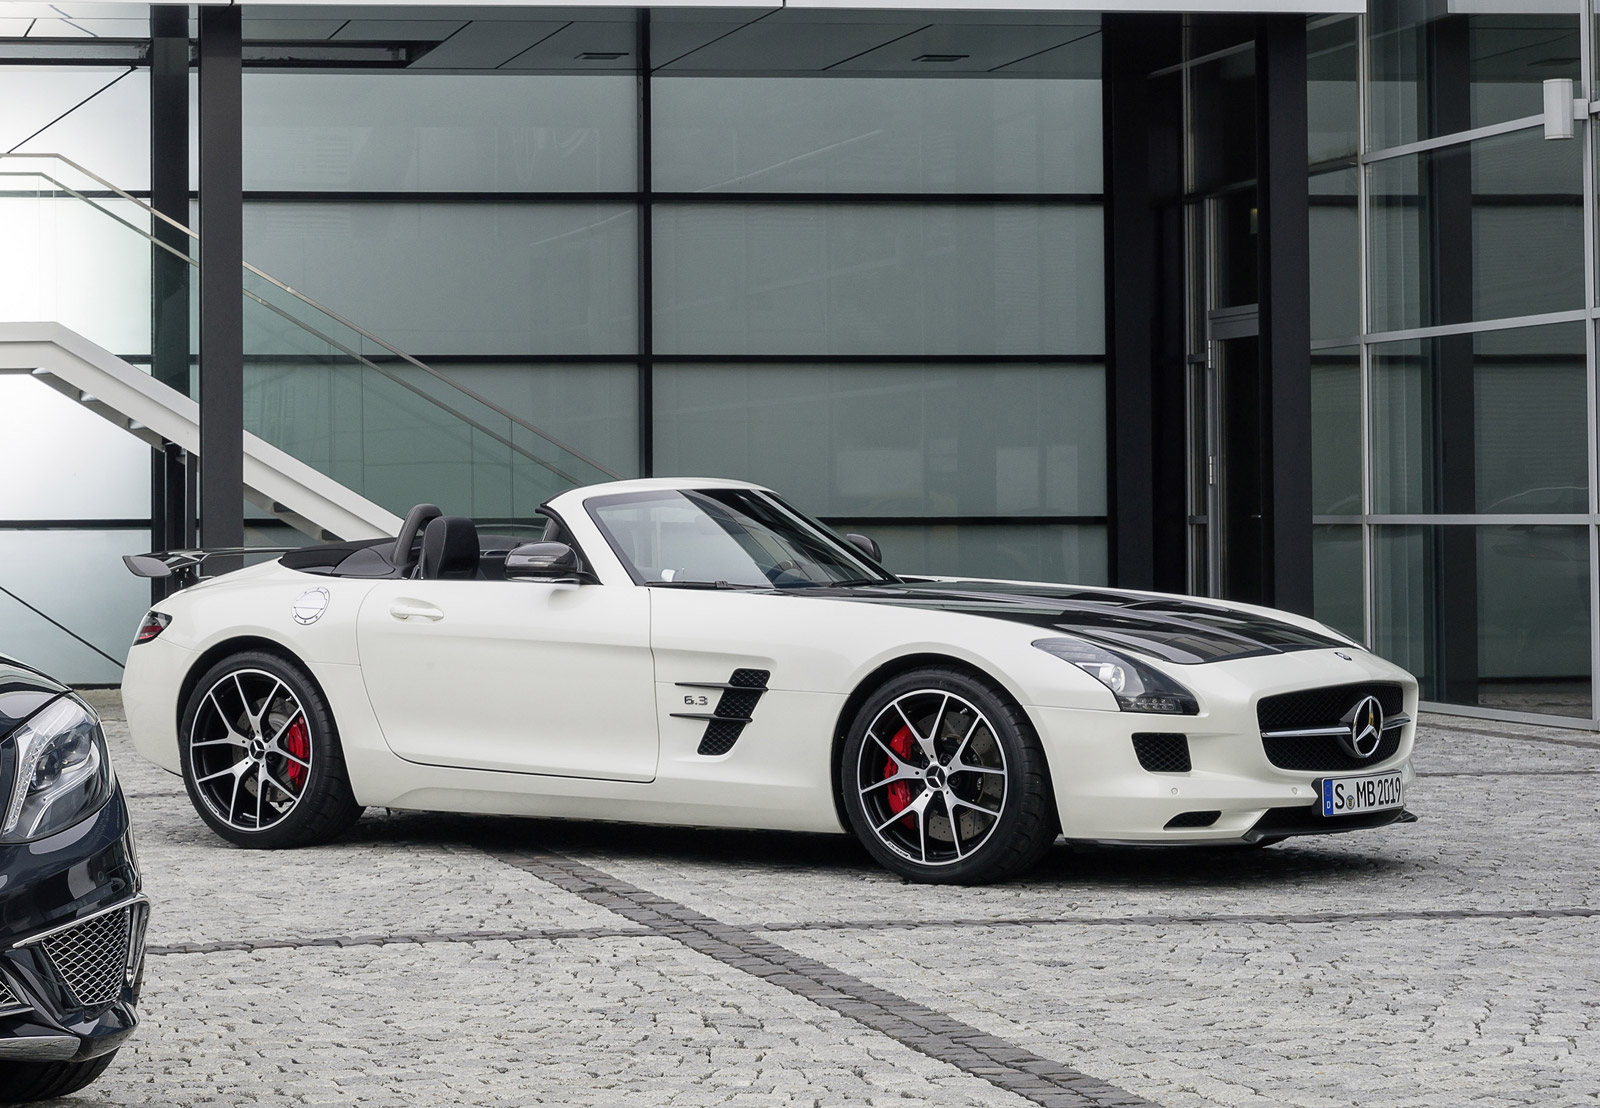 2015 mercedes benz sls amg gt review ratings specs for Mercedes benz amg gt coupe price